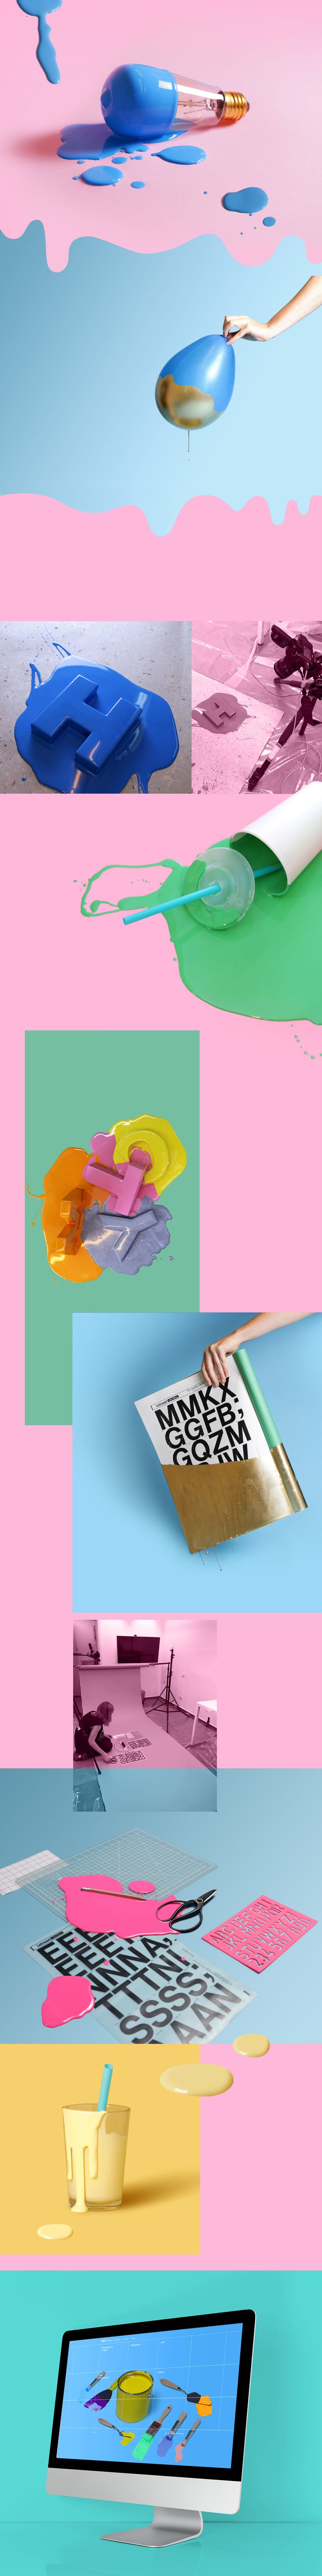 A series of images that we art directed and produced especially for the Online Design Library at Wix.com We had a lot of fun splashing around in Color and dipping things in paint.  Contributers: Orly Kiryati, Yamit Hadad, Dafna Tamir & Alan Tzatzkin